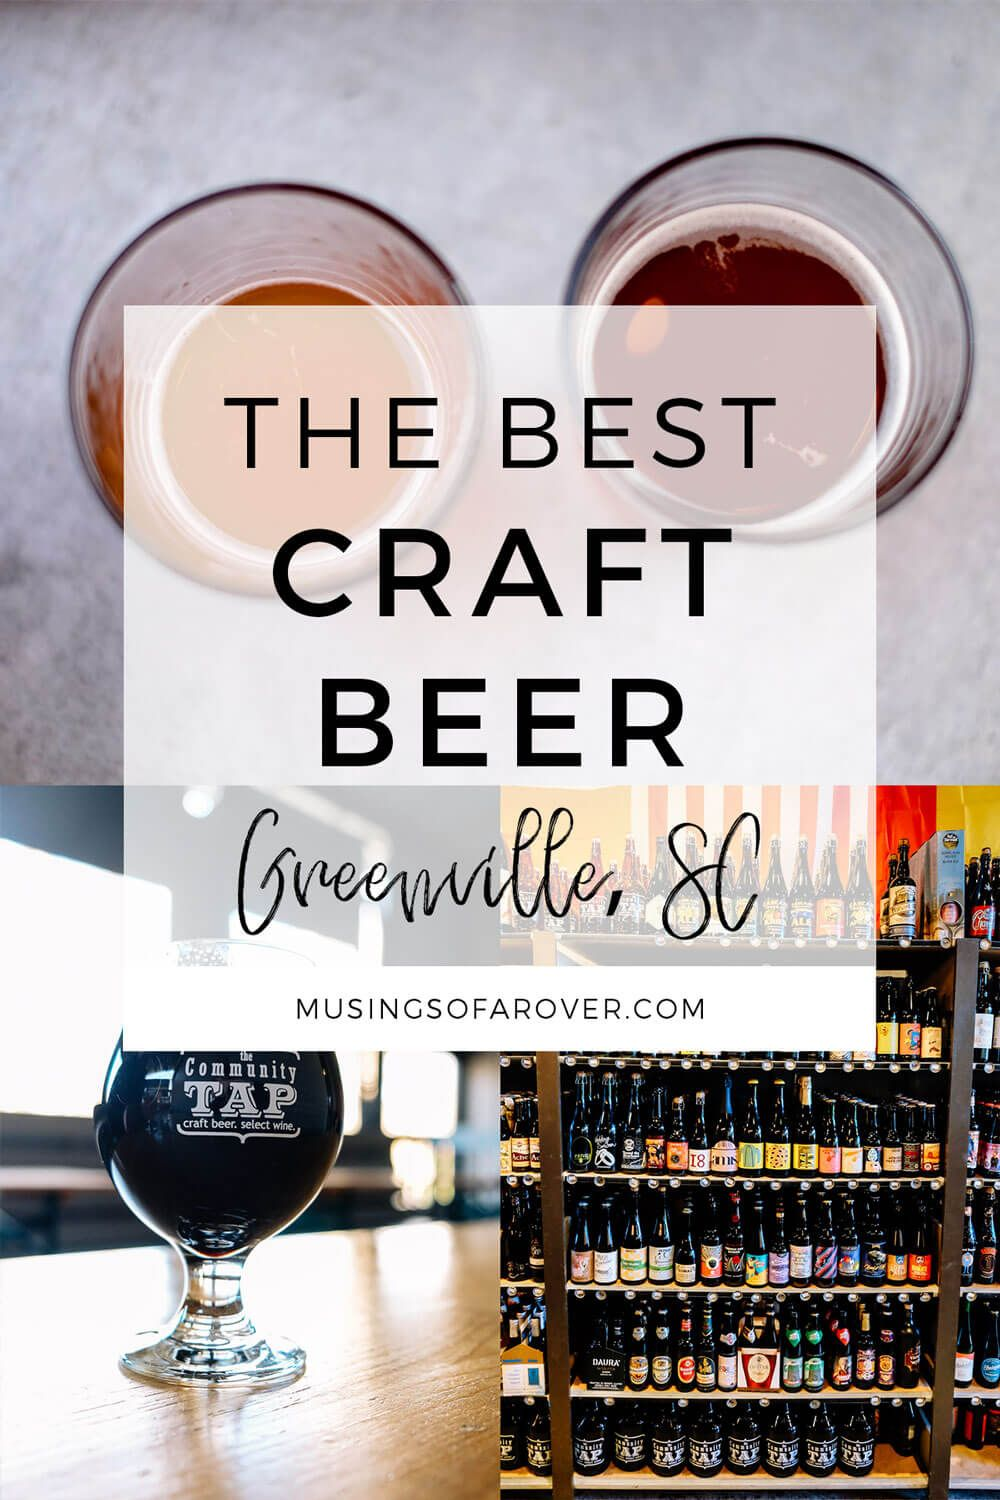 Looking for great craft beer in Greenville, SC? This is town has so many great bars, taprooms, breweries, and more. Here's a list of 10 local favorites to get you started for your own bar crawl!